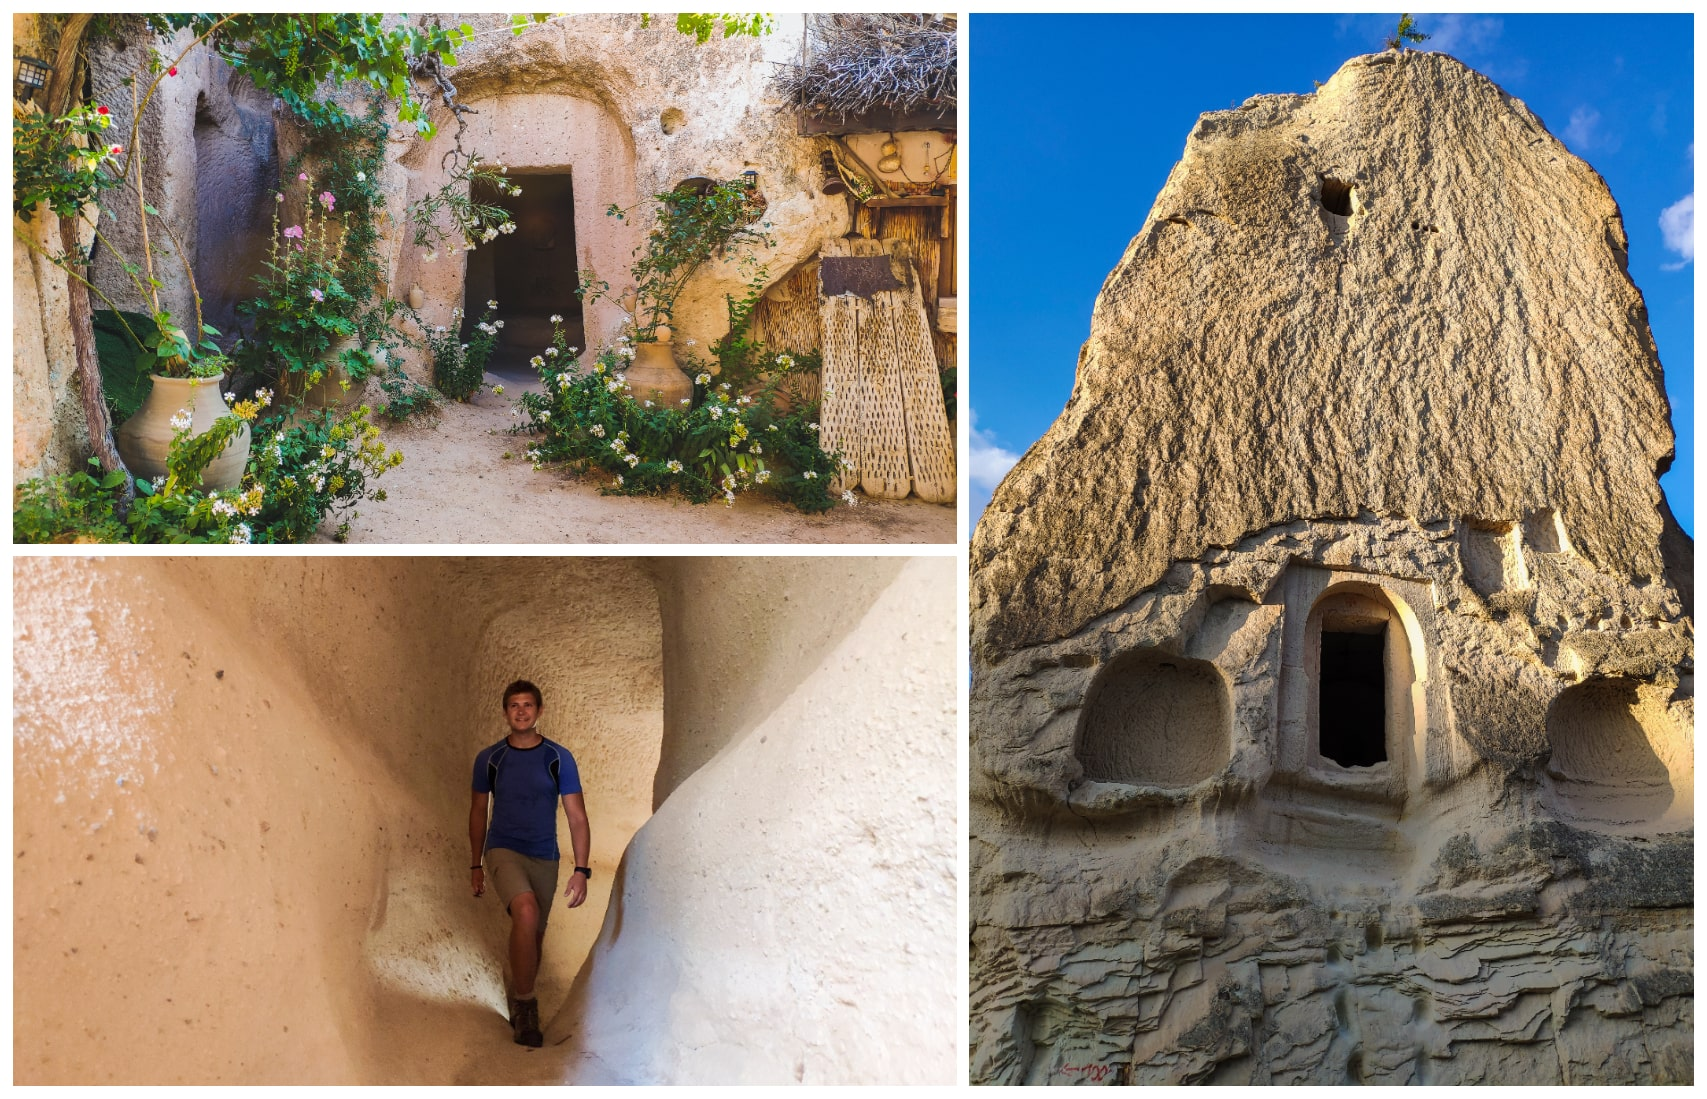 OUR ADVENTUROUS HIKE THROUGH CAPPADOCIA: BEST PLACE TO SEE HOT AIR BALLOONS